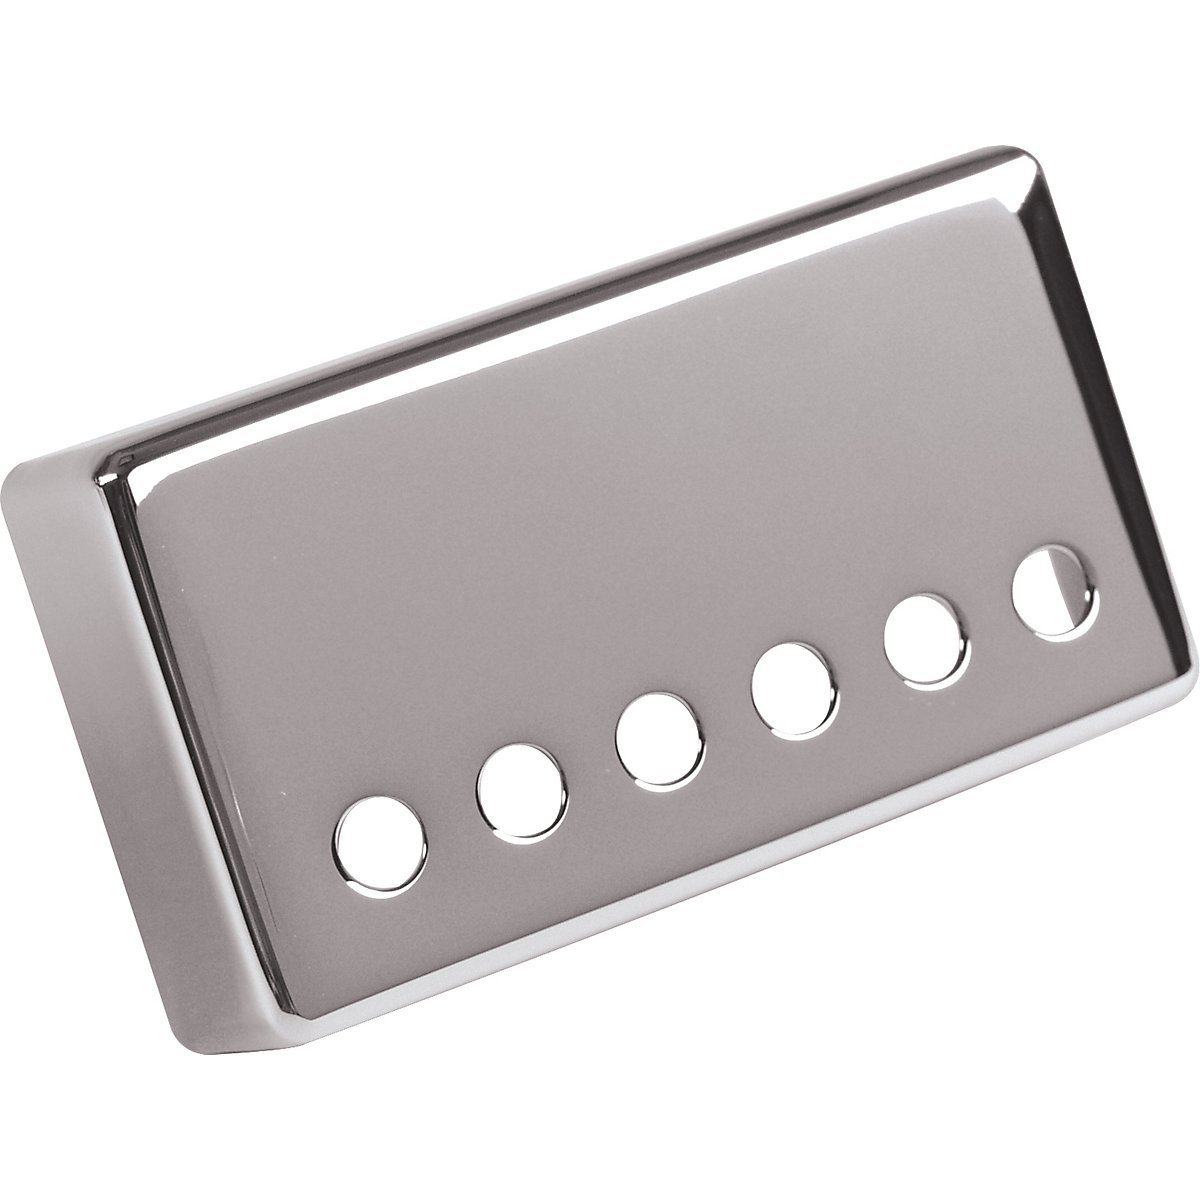 Gibson Gear Chrome/Bridge Spacing Pickup Cover PRPC-015 1417